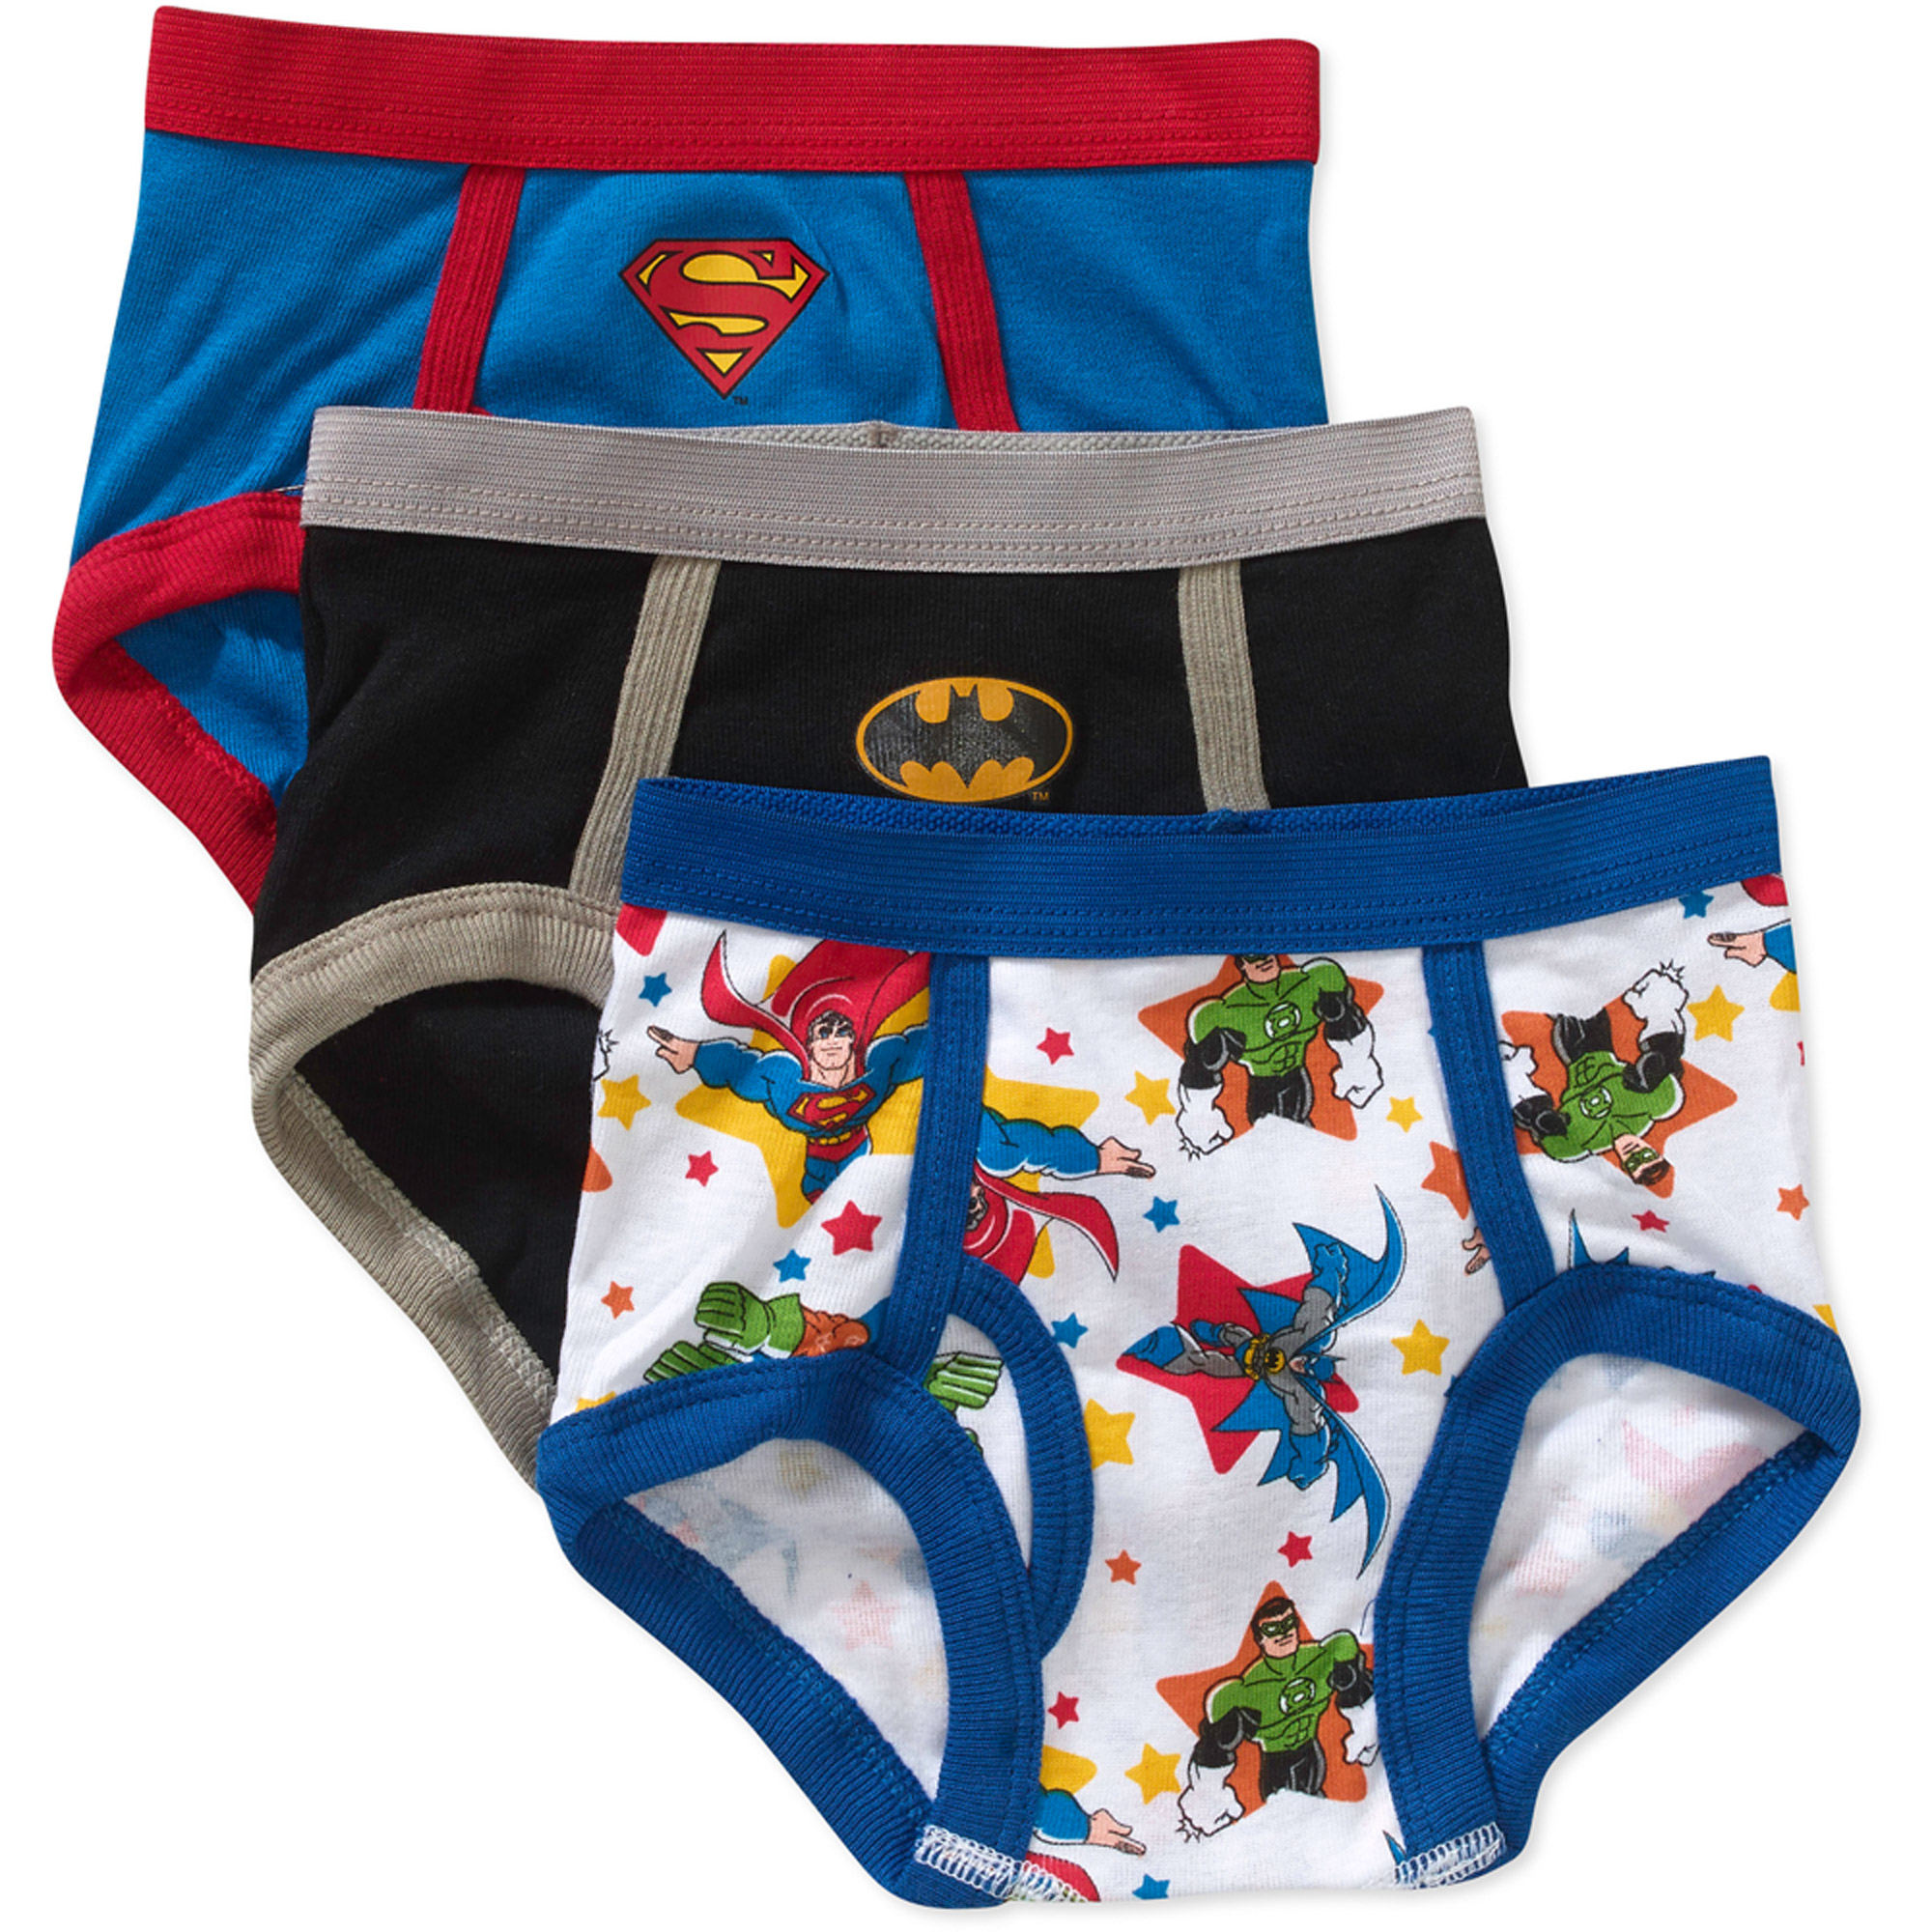 Superfriends Toddler Boys Underwear, 3 Pack